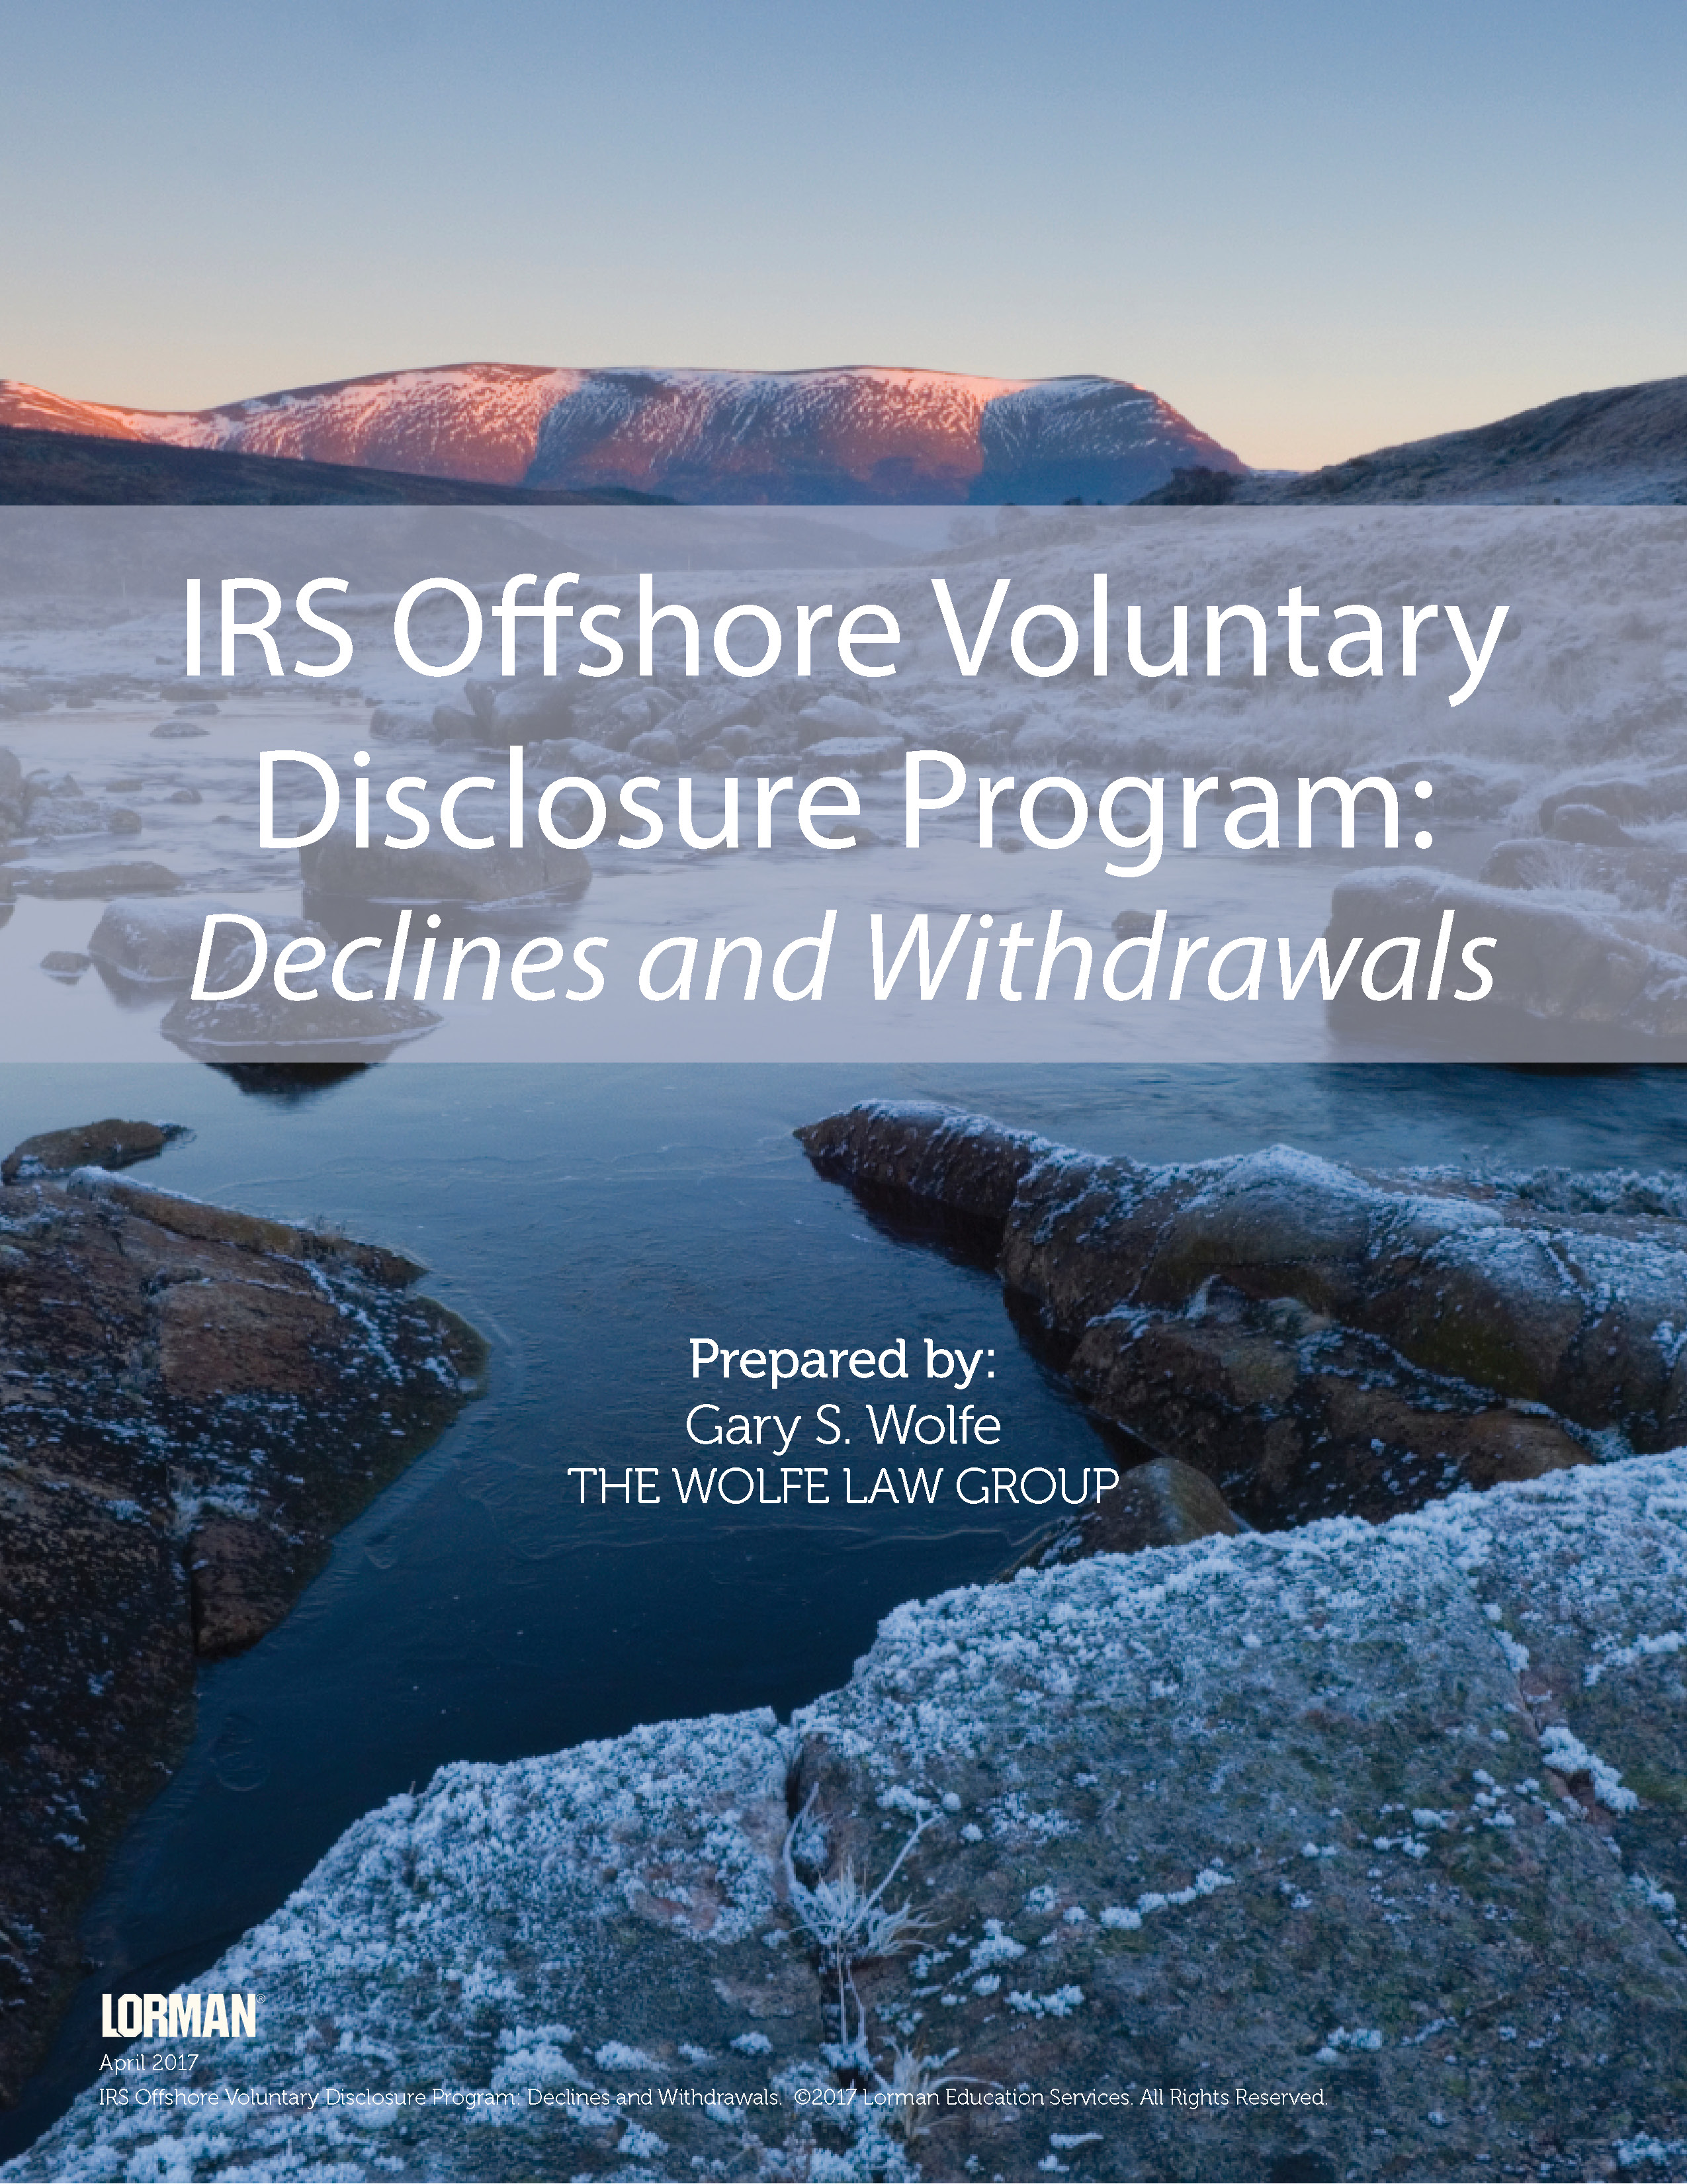 IRS Offshore Voluntary Disclosure Program: Declines and Withdrawals